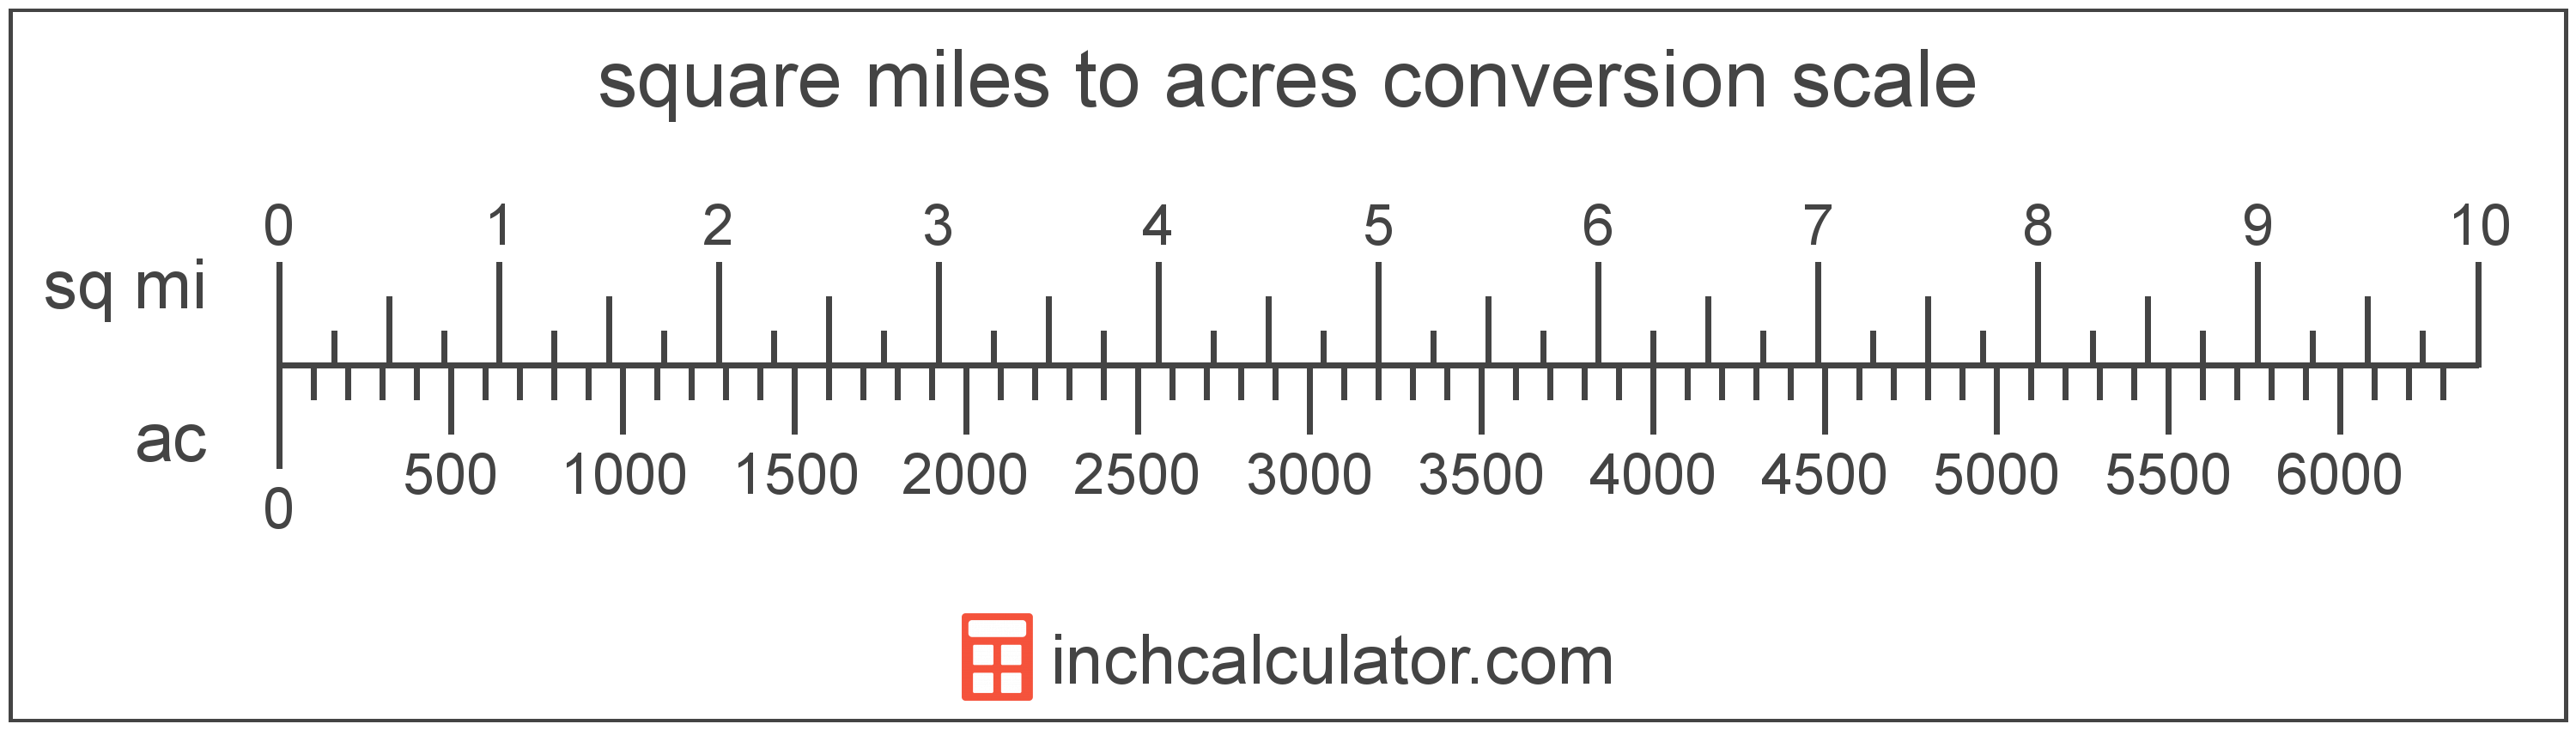 conversion scale showing acres and equivalent square miles area values